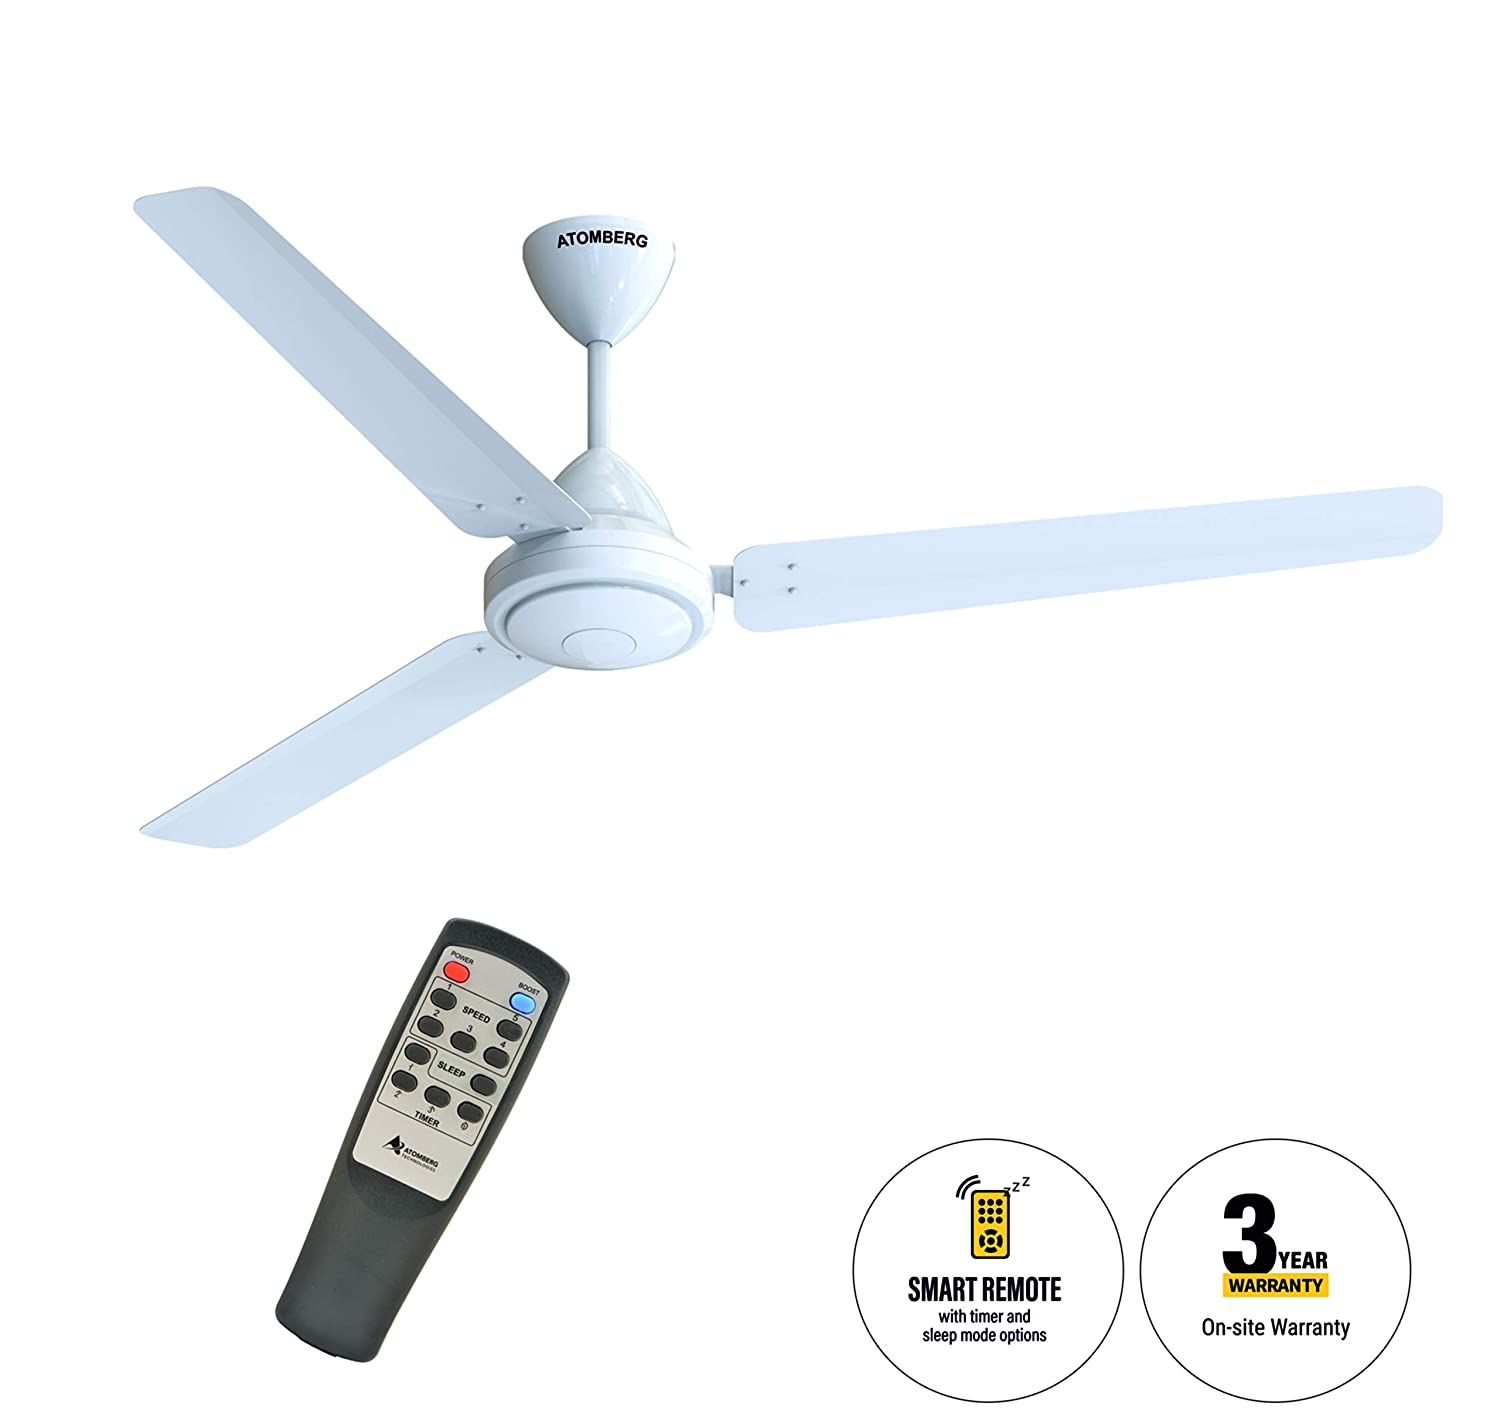 gorilla ceiling fans, Gorilla Ceiling Fans (BLDC) by Atomberg Technologies Review 2020